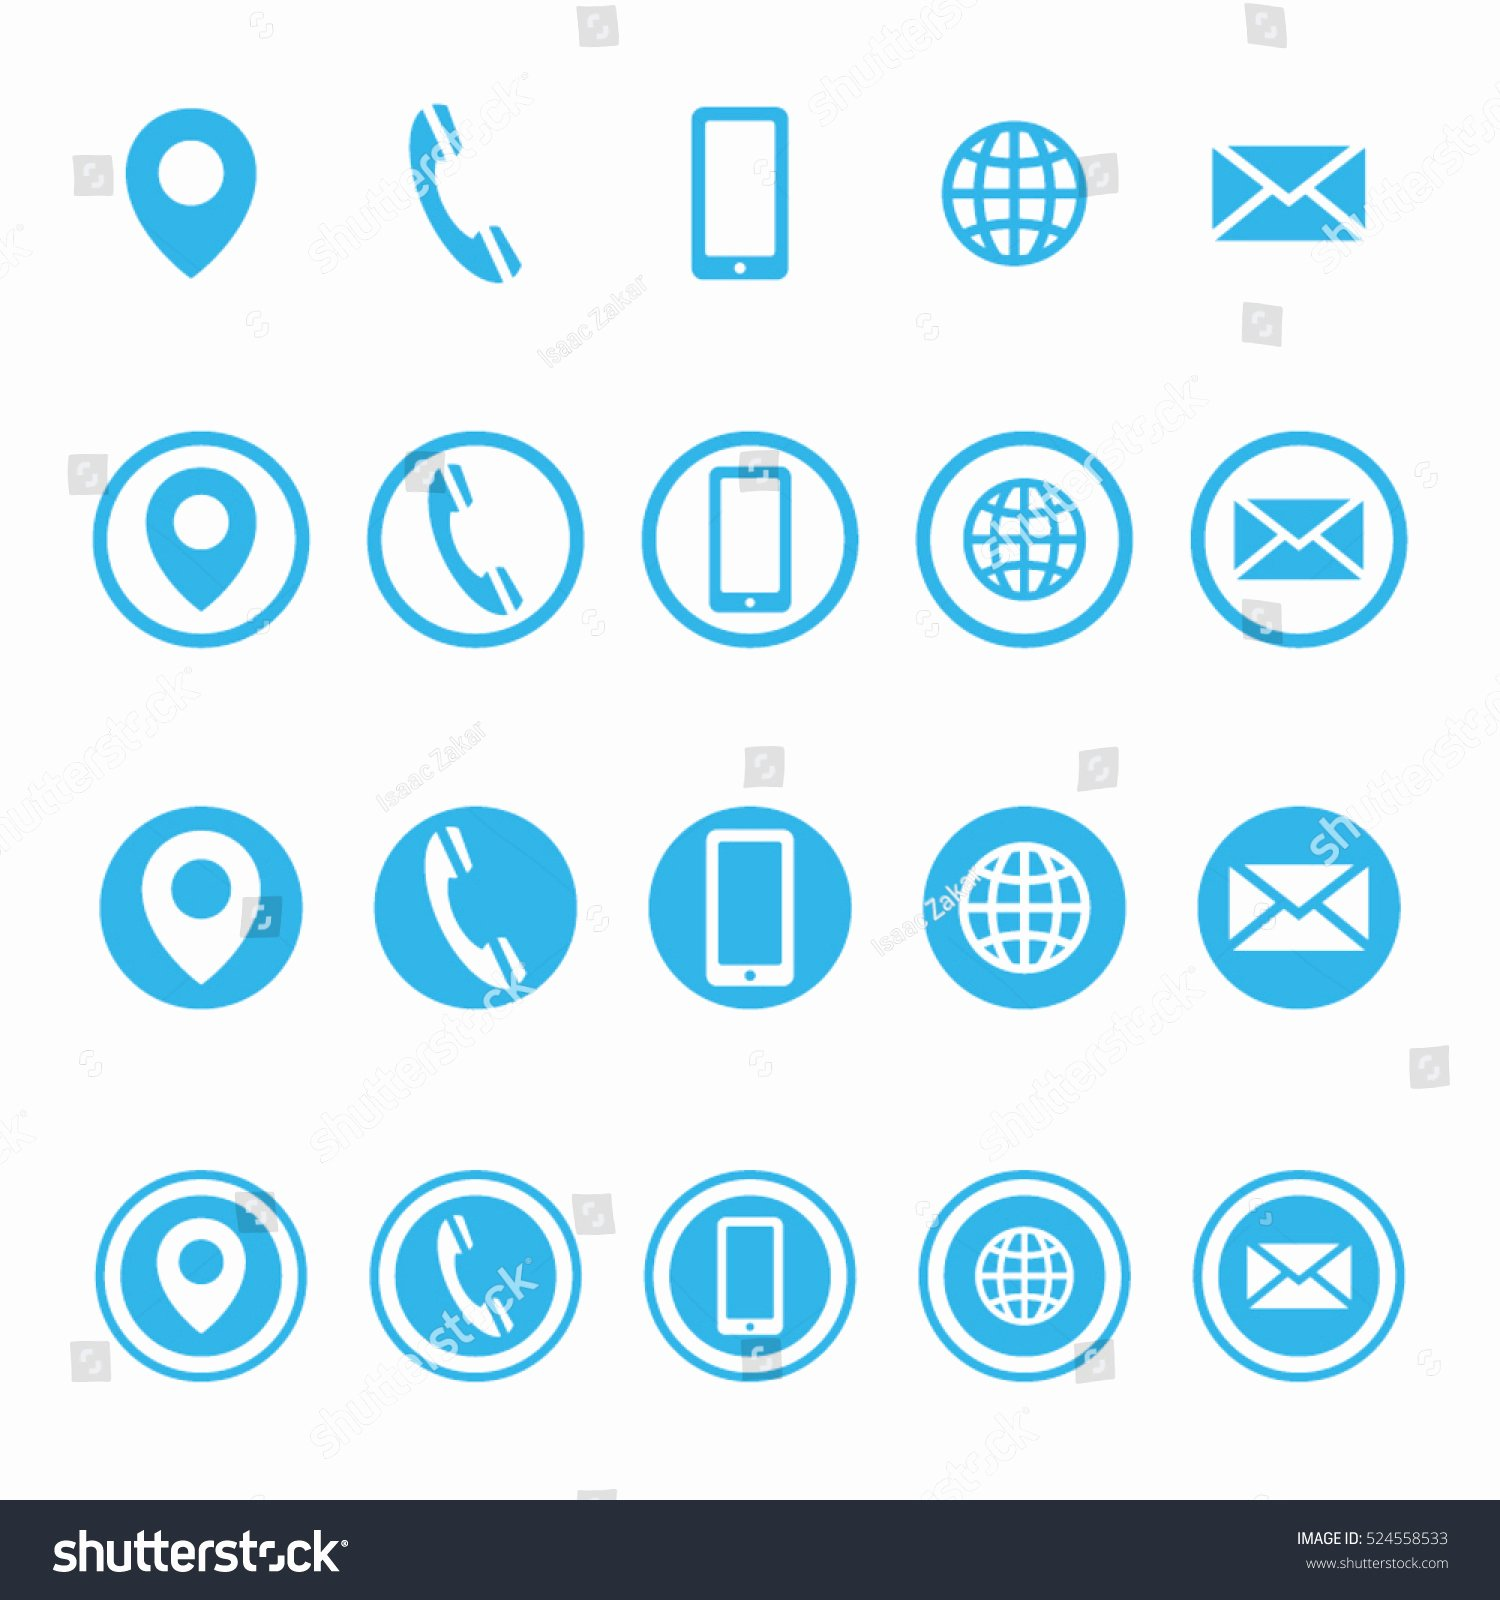 Icon for Business Cards Awesome Vector Business Card Contact Information Icons Stock Vector Shutterstock